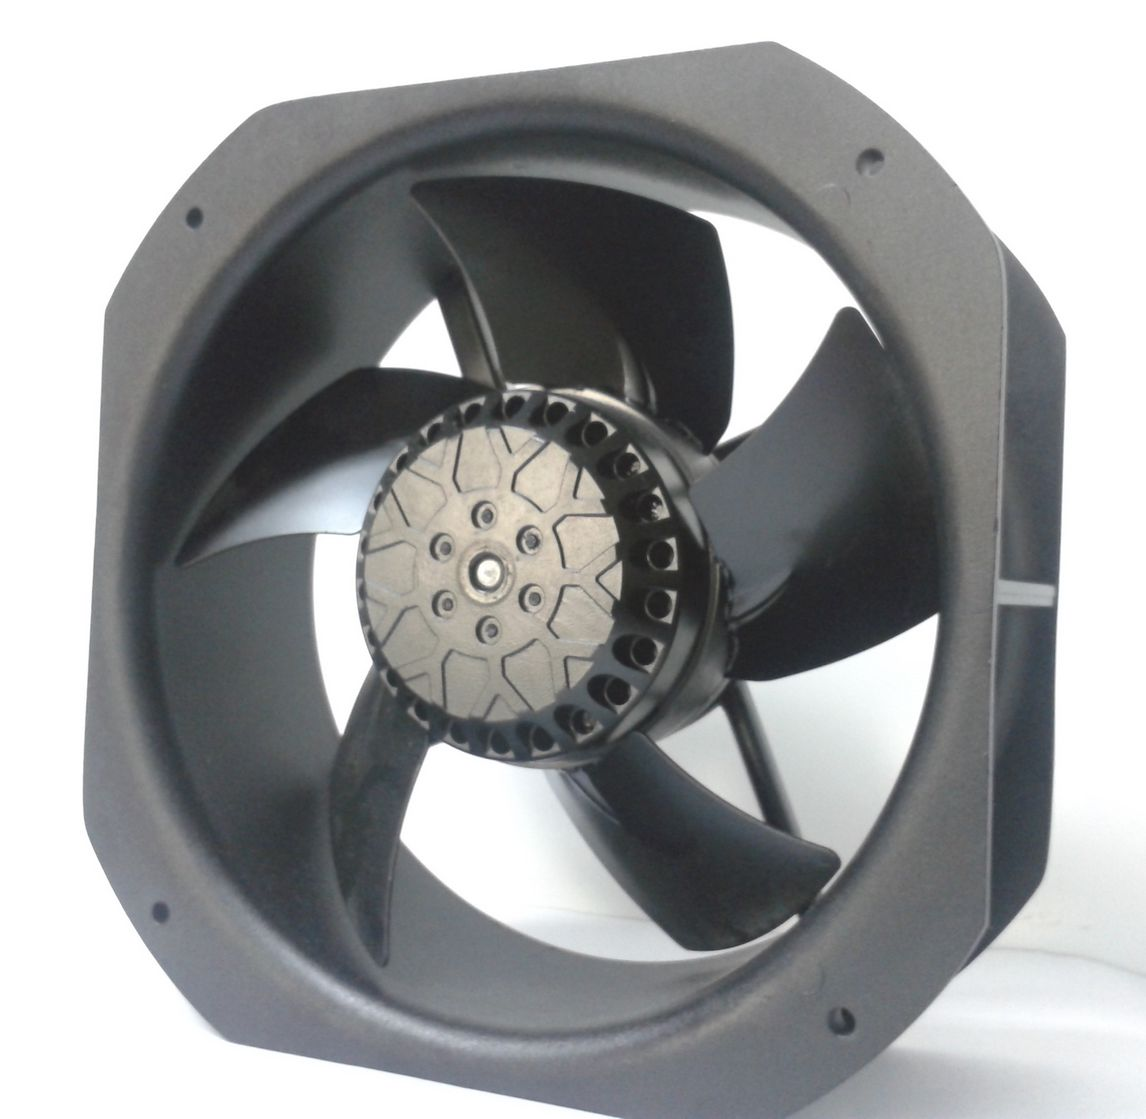 Big Vent Fans : Large airflow axial flow fan for air ventilation